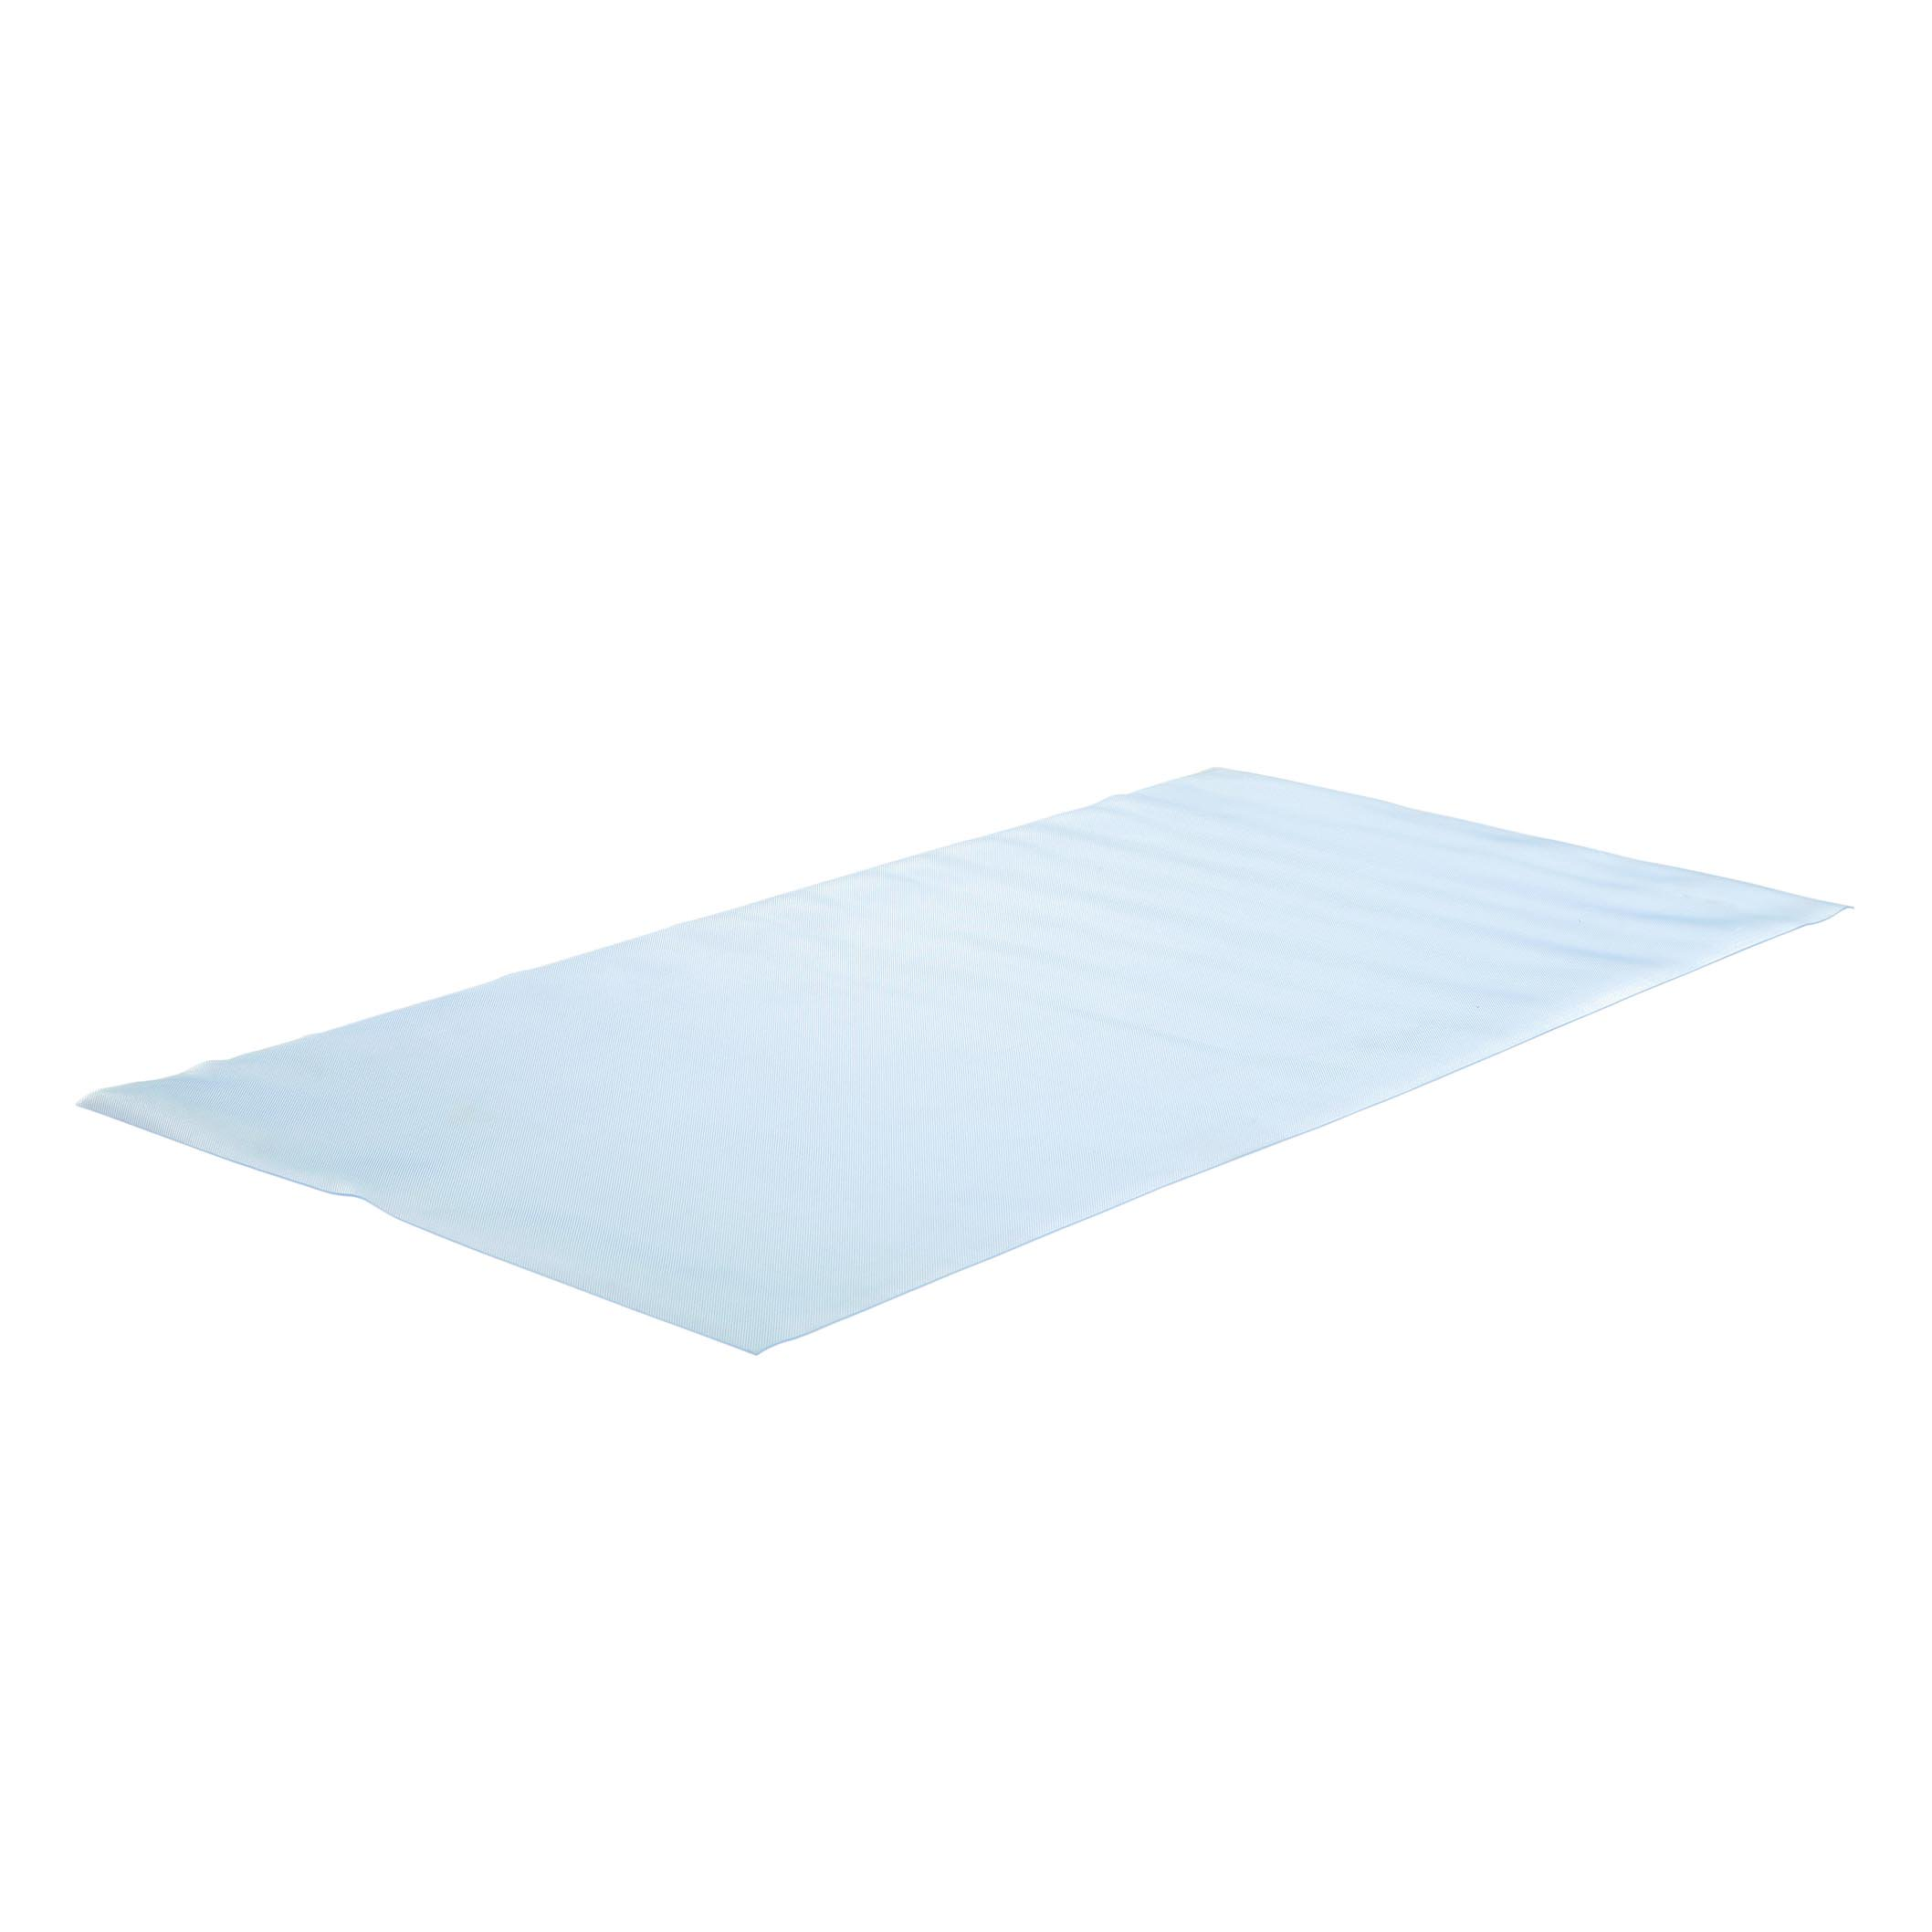 NordicTrack 3' x 6' Durable Exercise Fitness Equipment Vinyl Floor Mat, Clear by NordicTrack